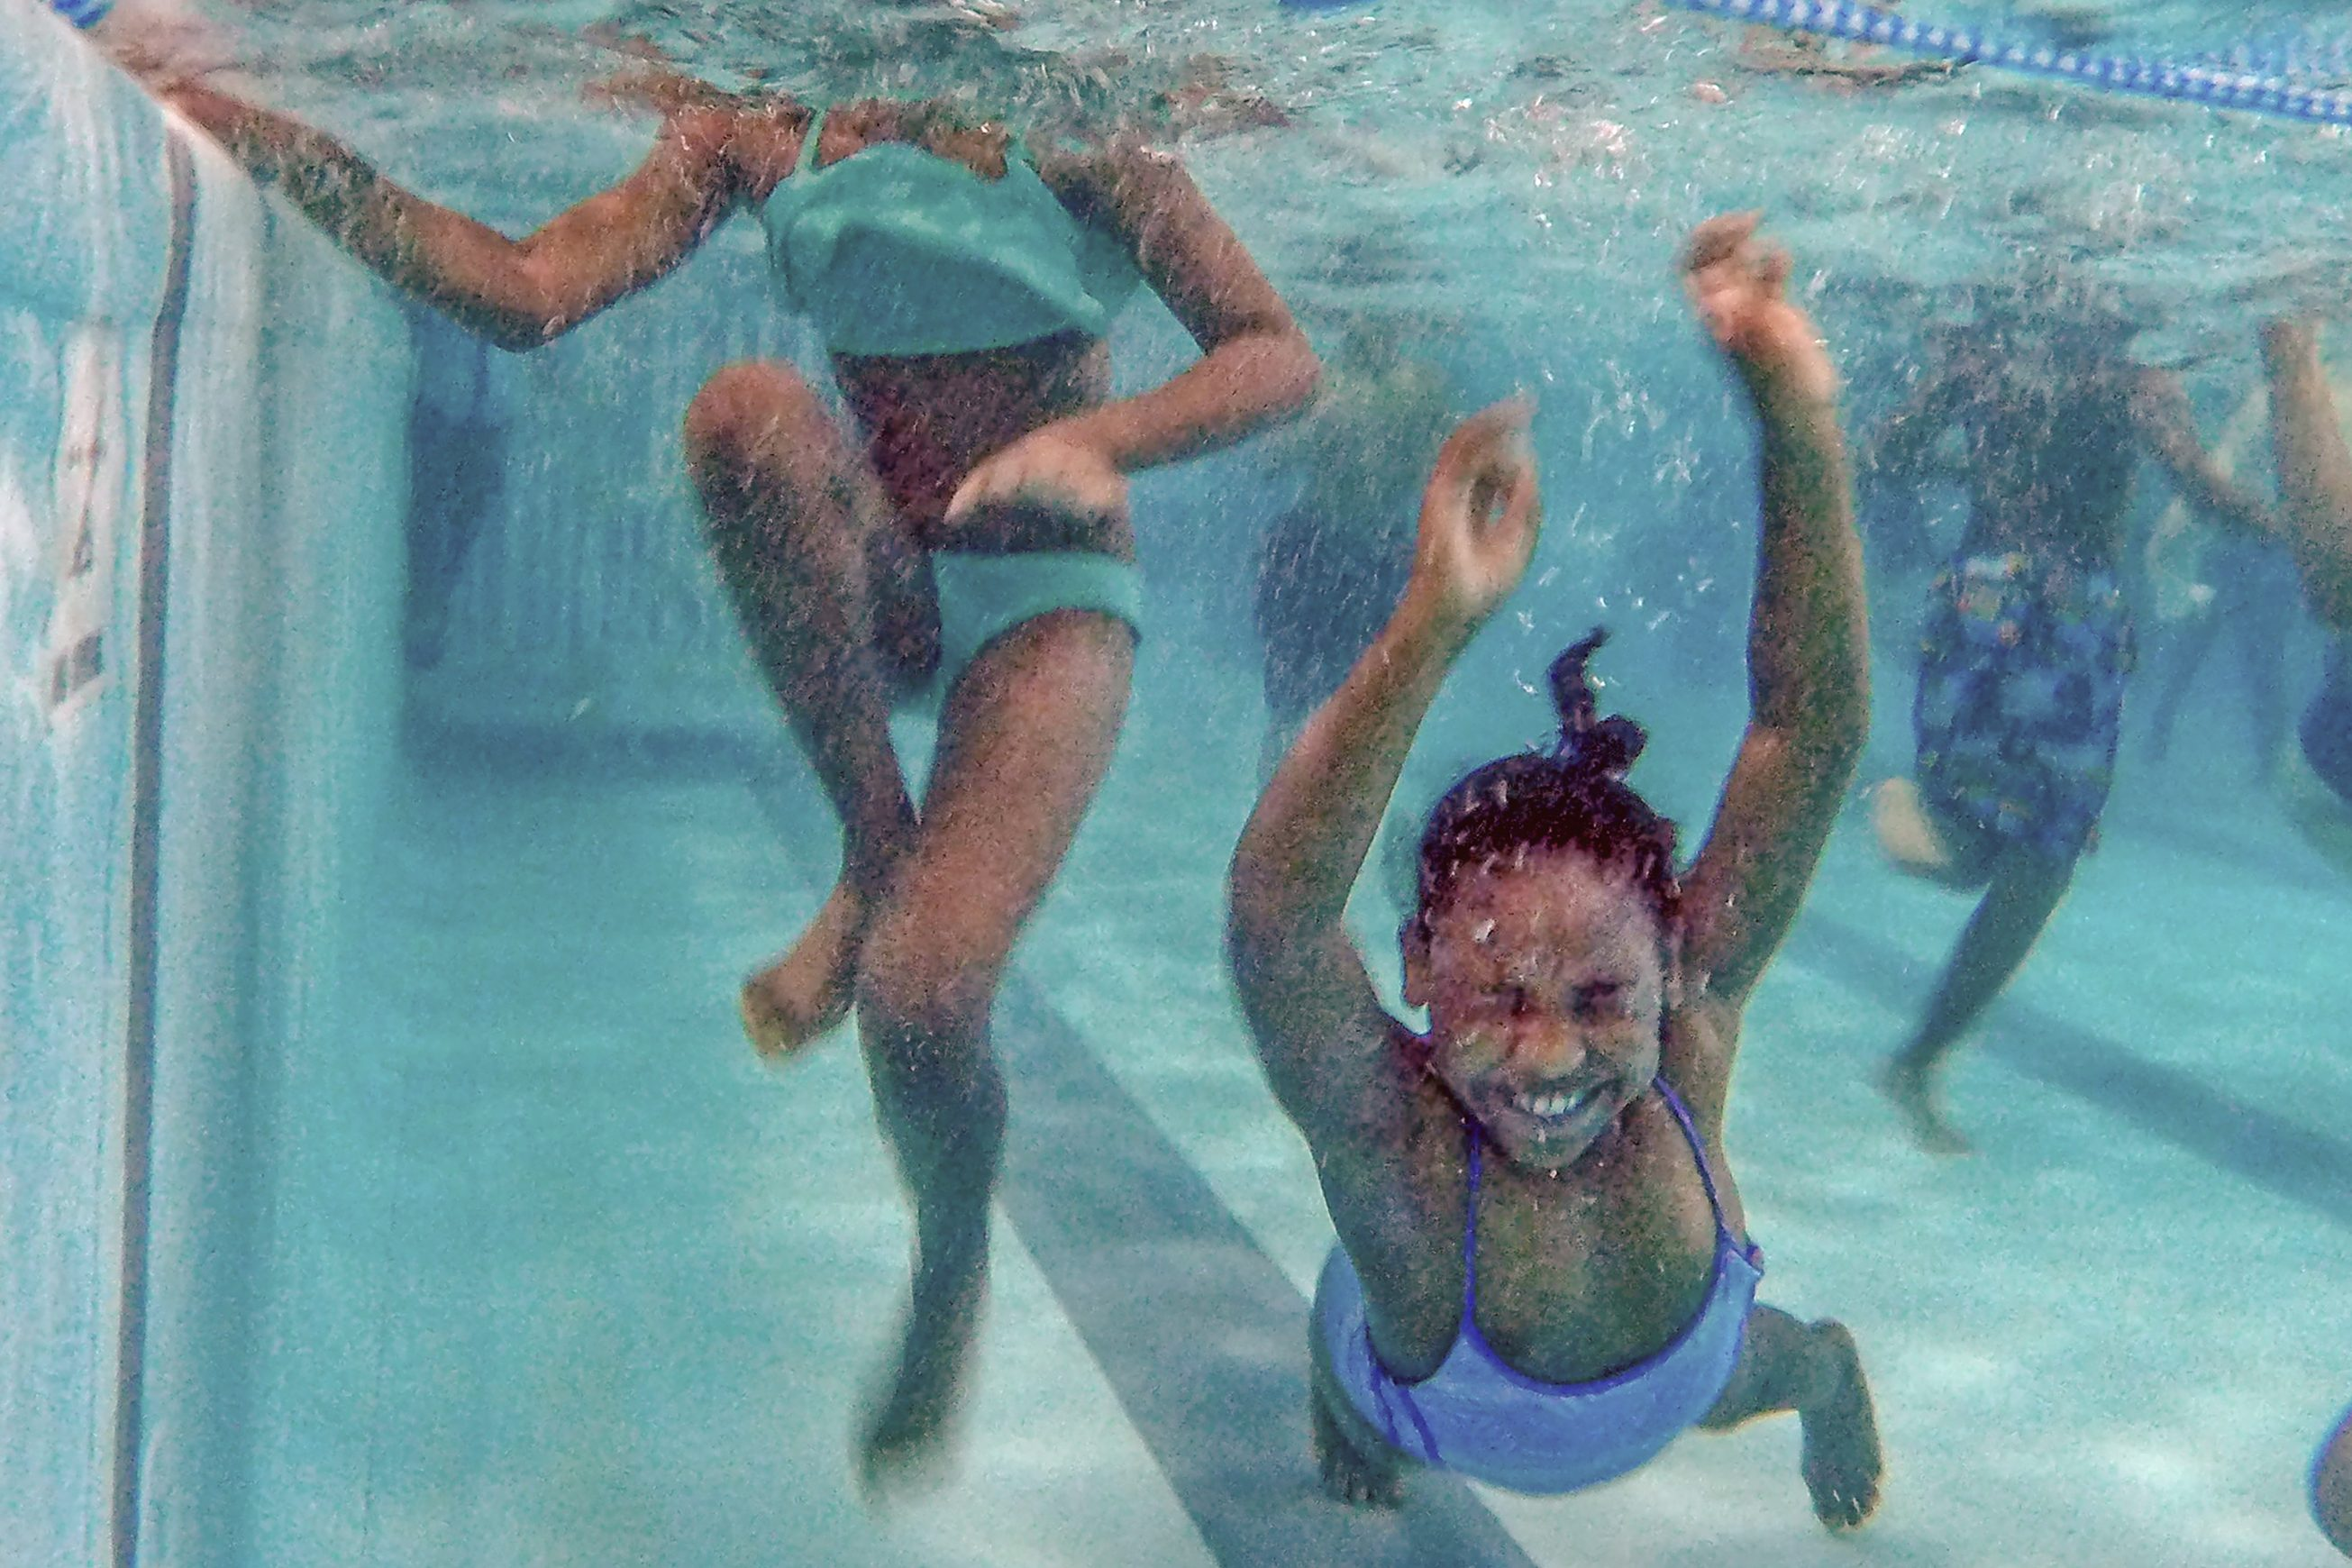 bb7a0b5c Many U.S. kids can't swim and are at risk for drowning